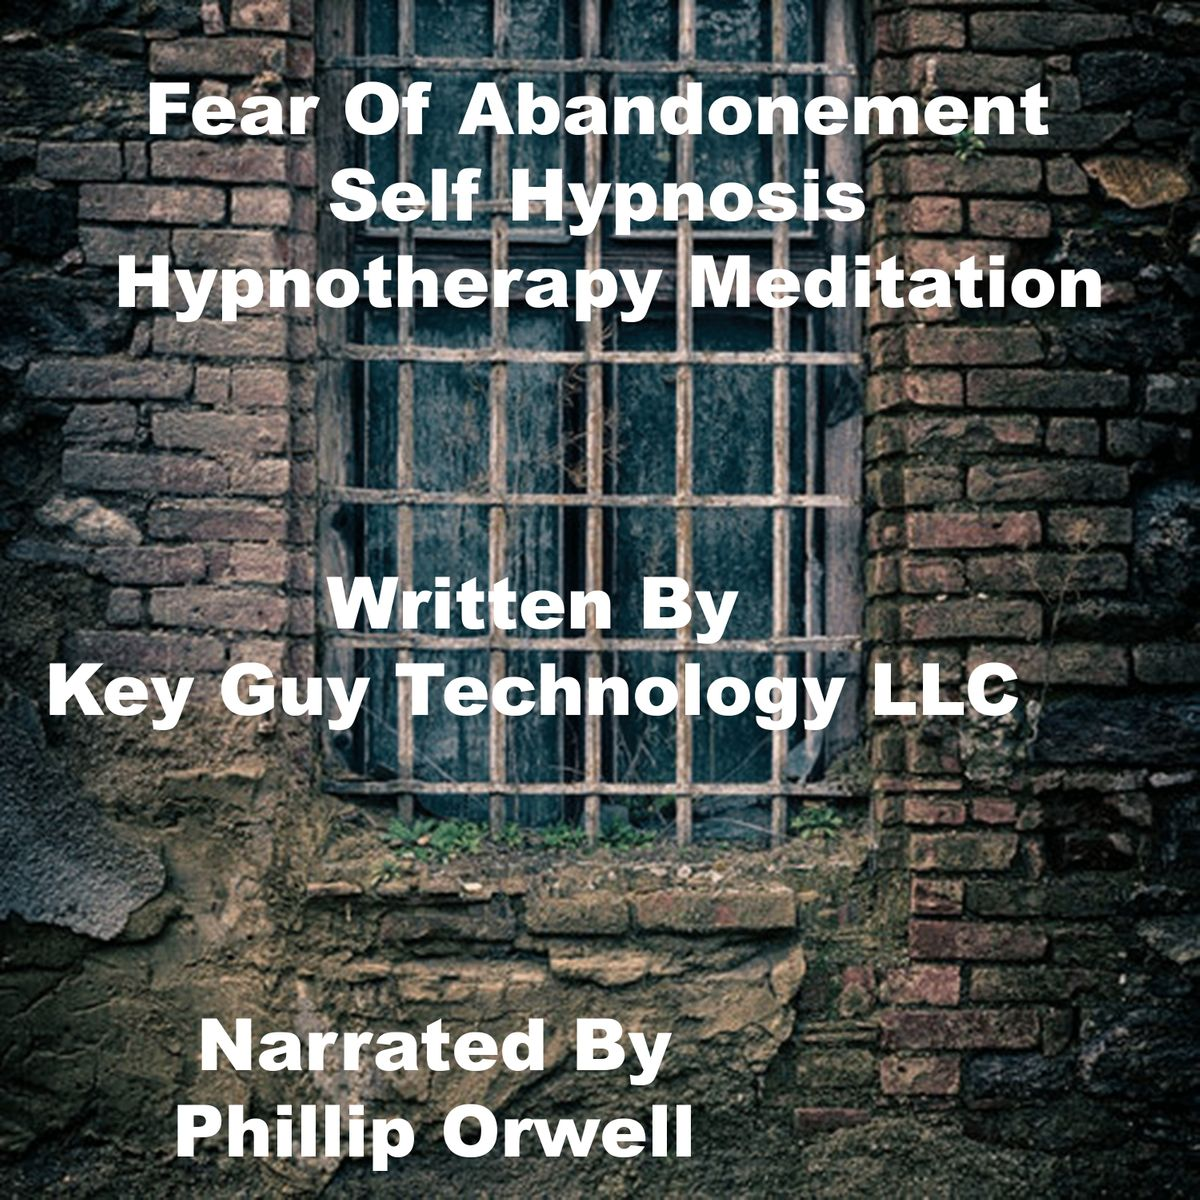 Fear Of Abandonment Self Hypnosis Hypnotherapy Meditation